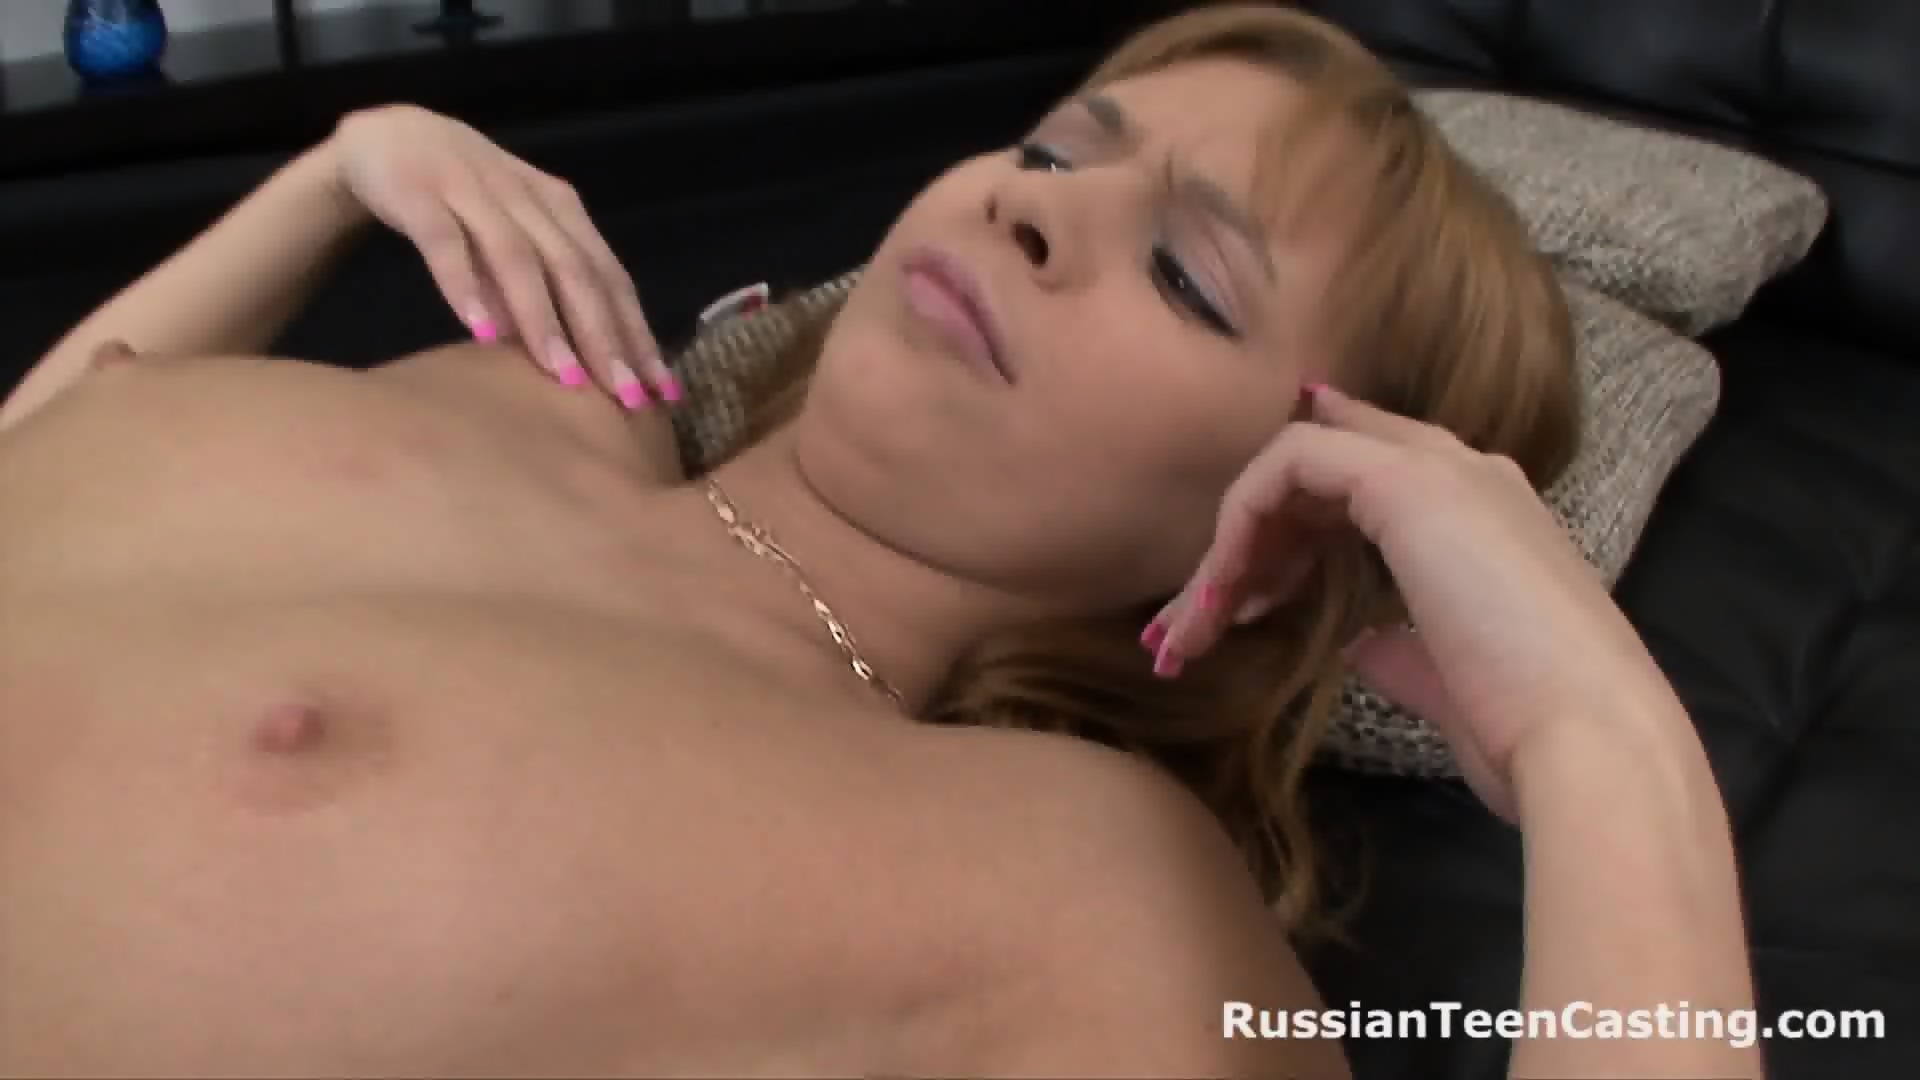 from Weston hot girls russian porn hard